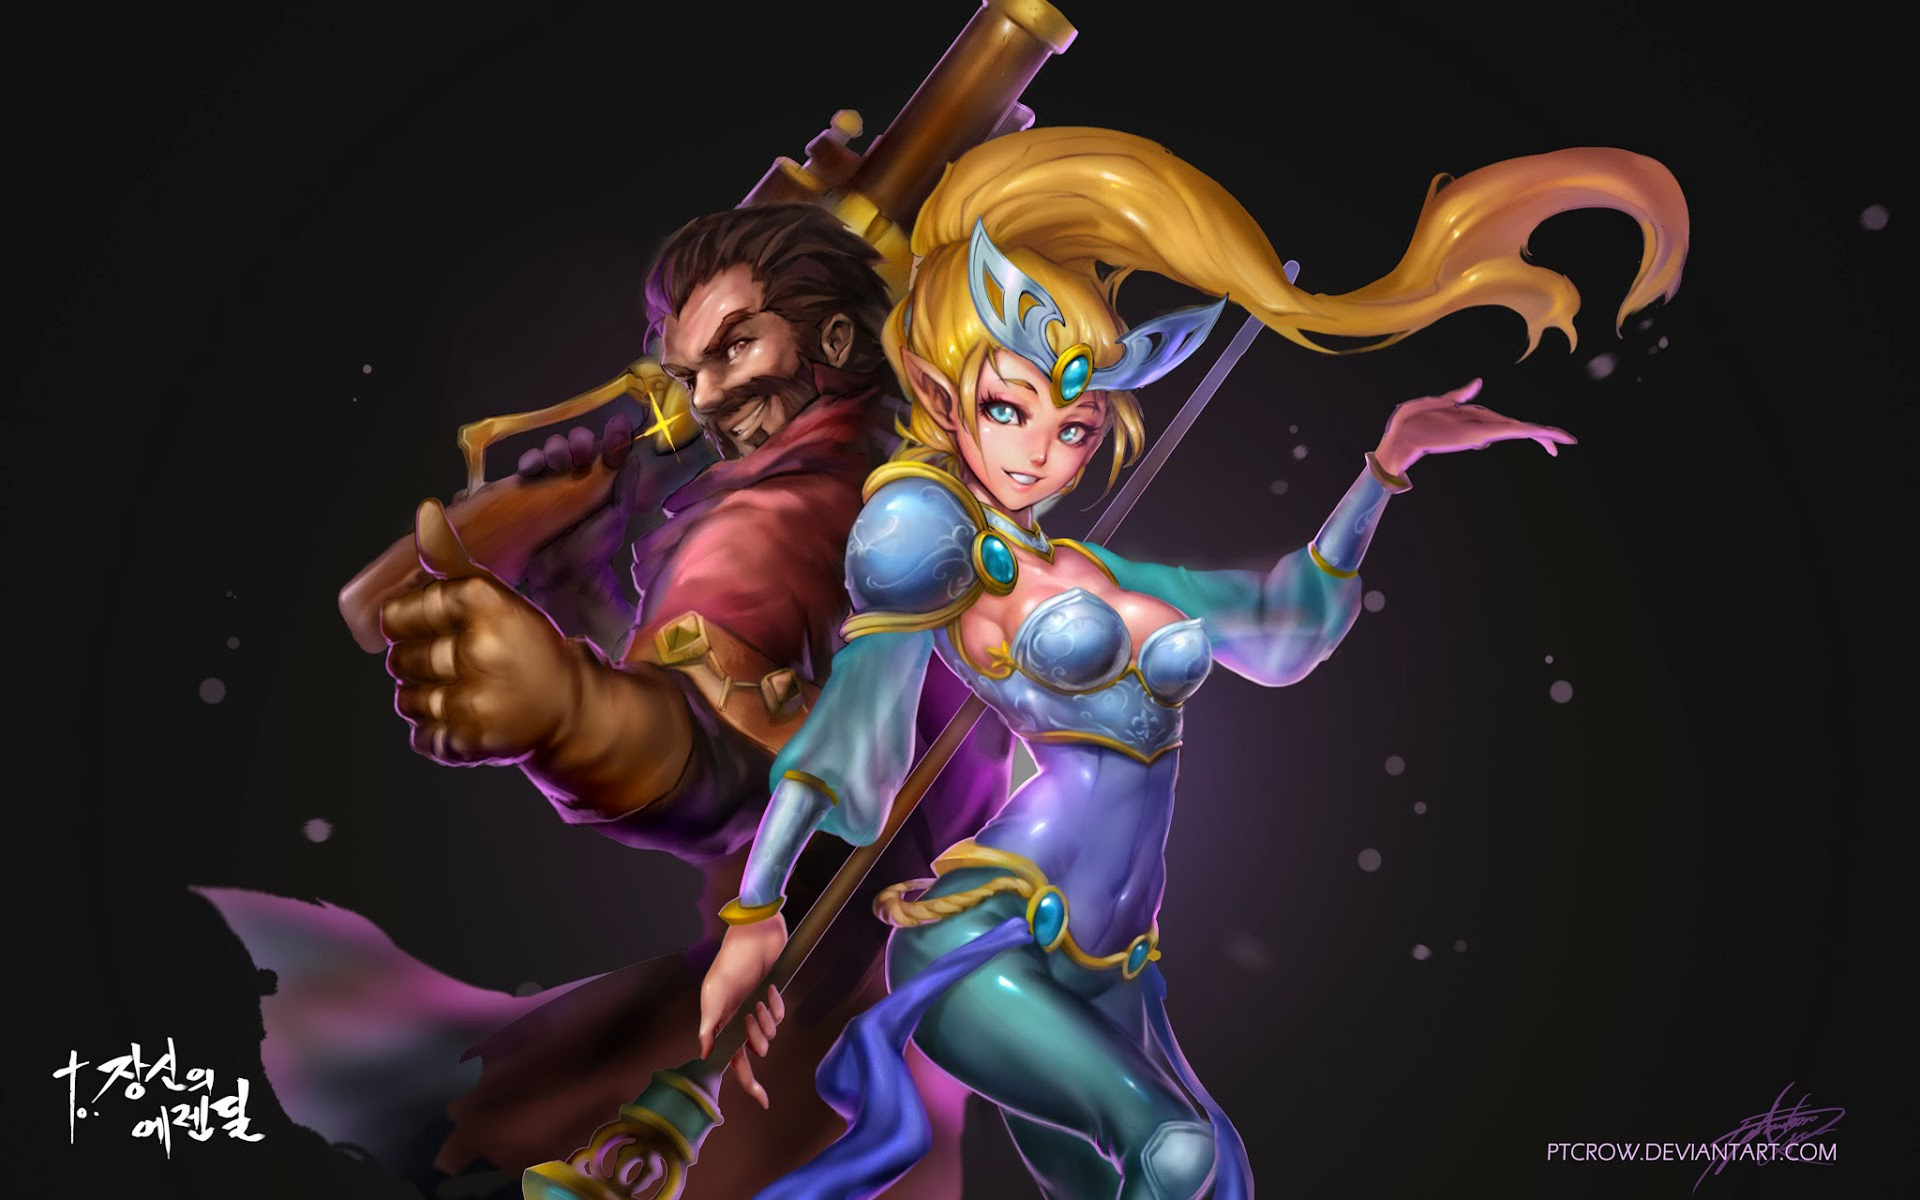 Graves & Janna wallpaper